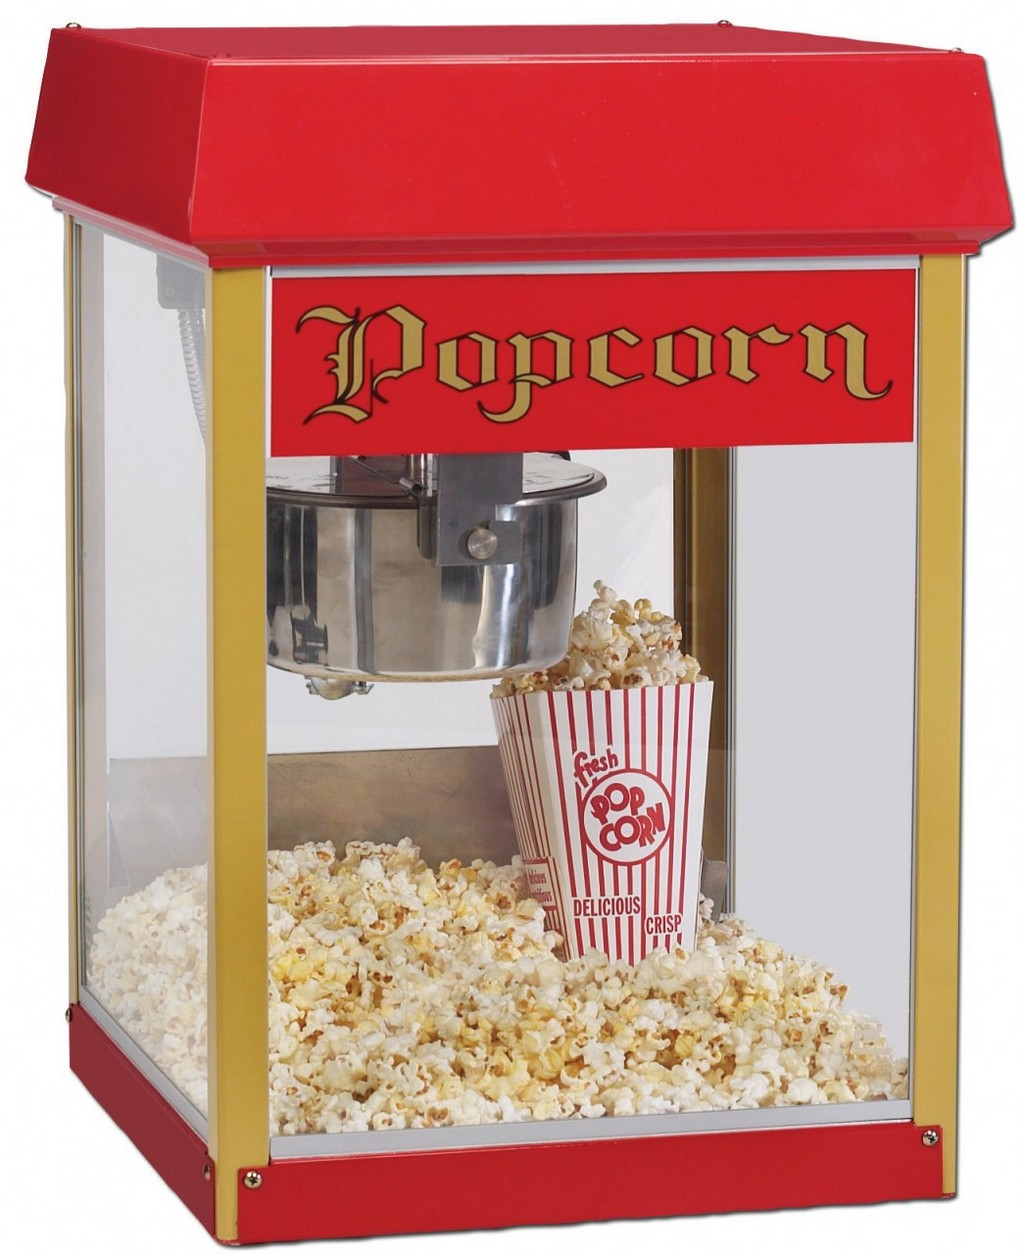 vintage popcorn machine coin operated, popcorn machine rental columbus ohio, professional popcorn maker